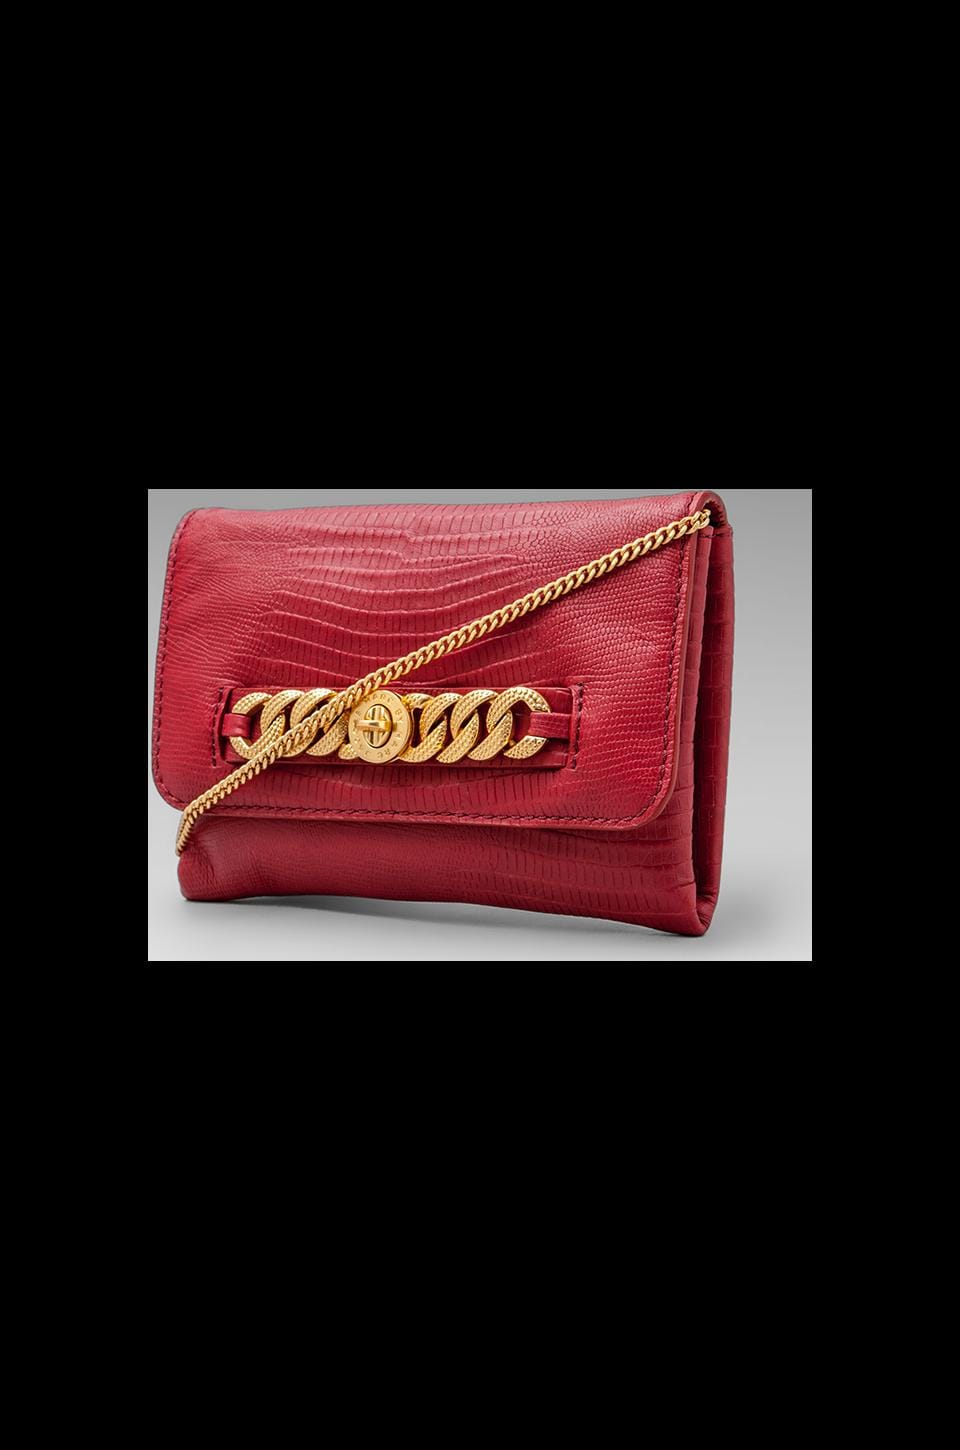 Marc by Marc Jacobs Katie Bracelet Crossbody in Lipstick Red